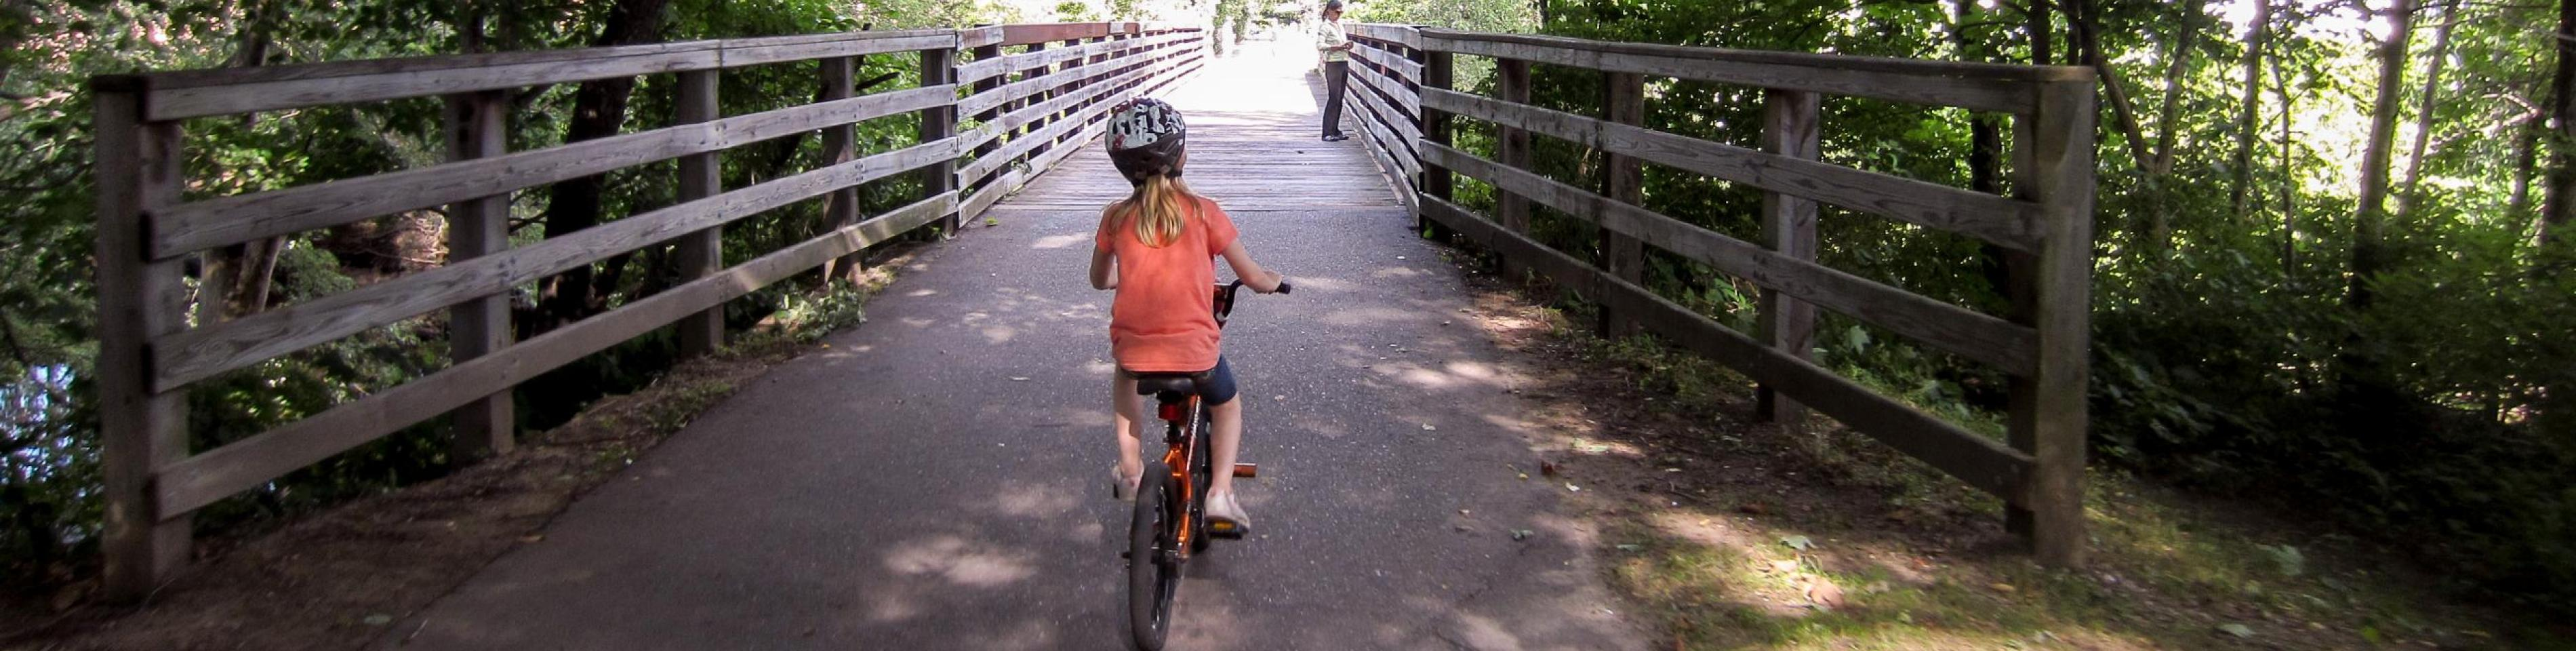 child on bike path